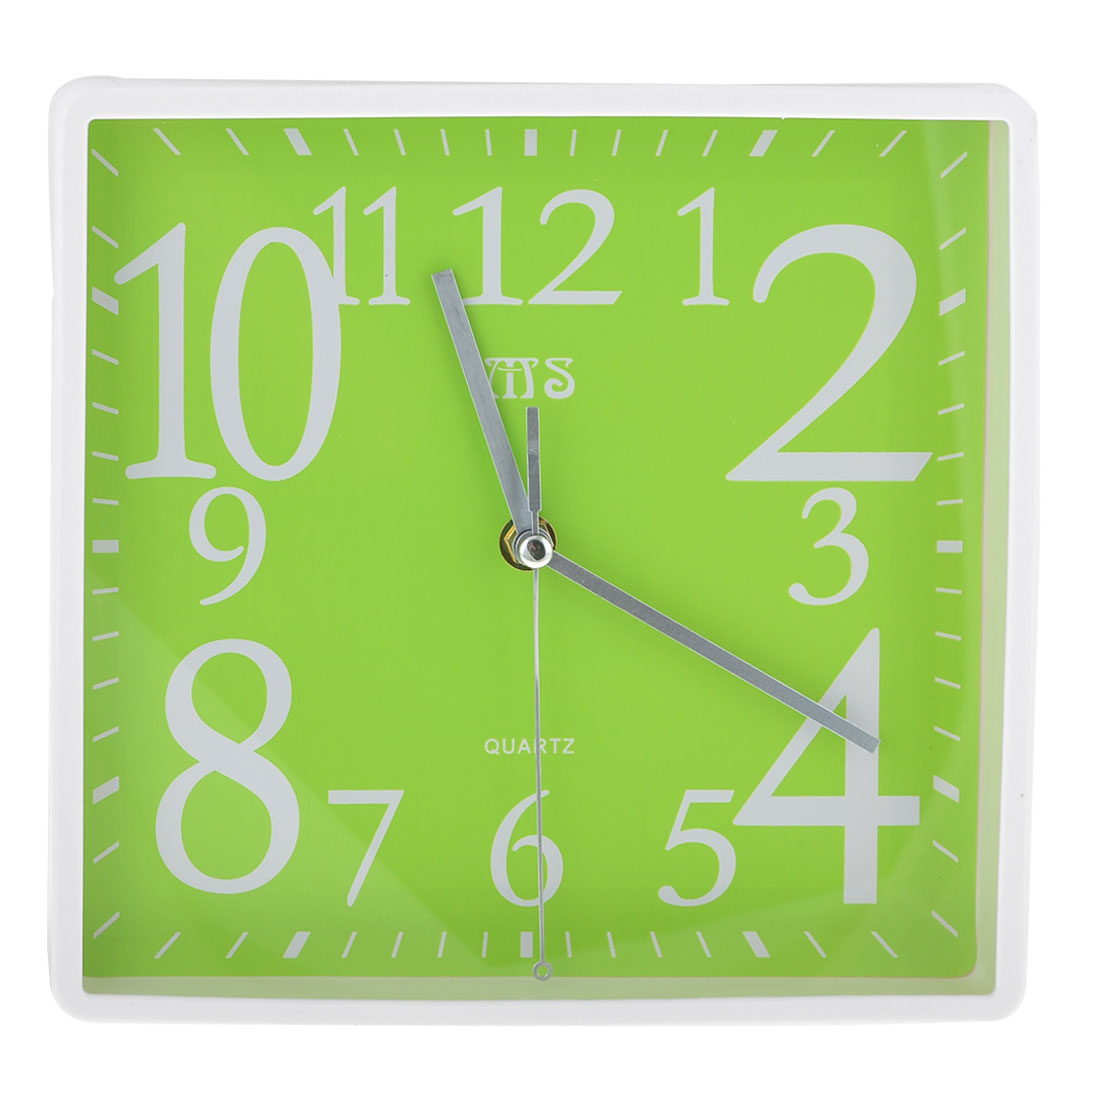 Office Green White Square Shaped Shell Wall Mounted Alarm Clock